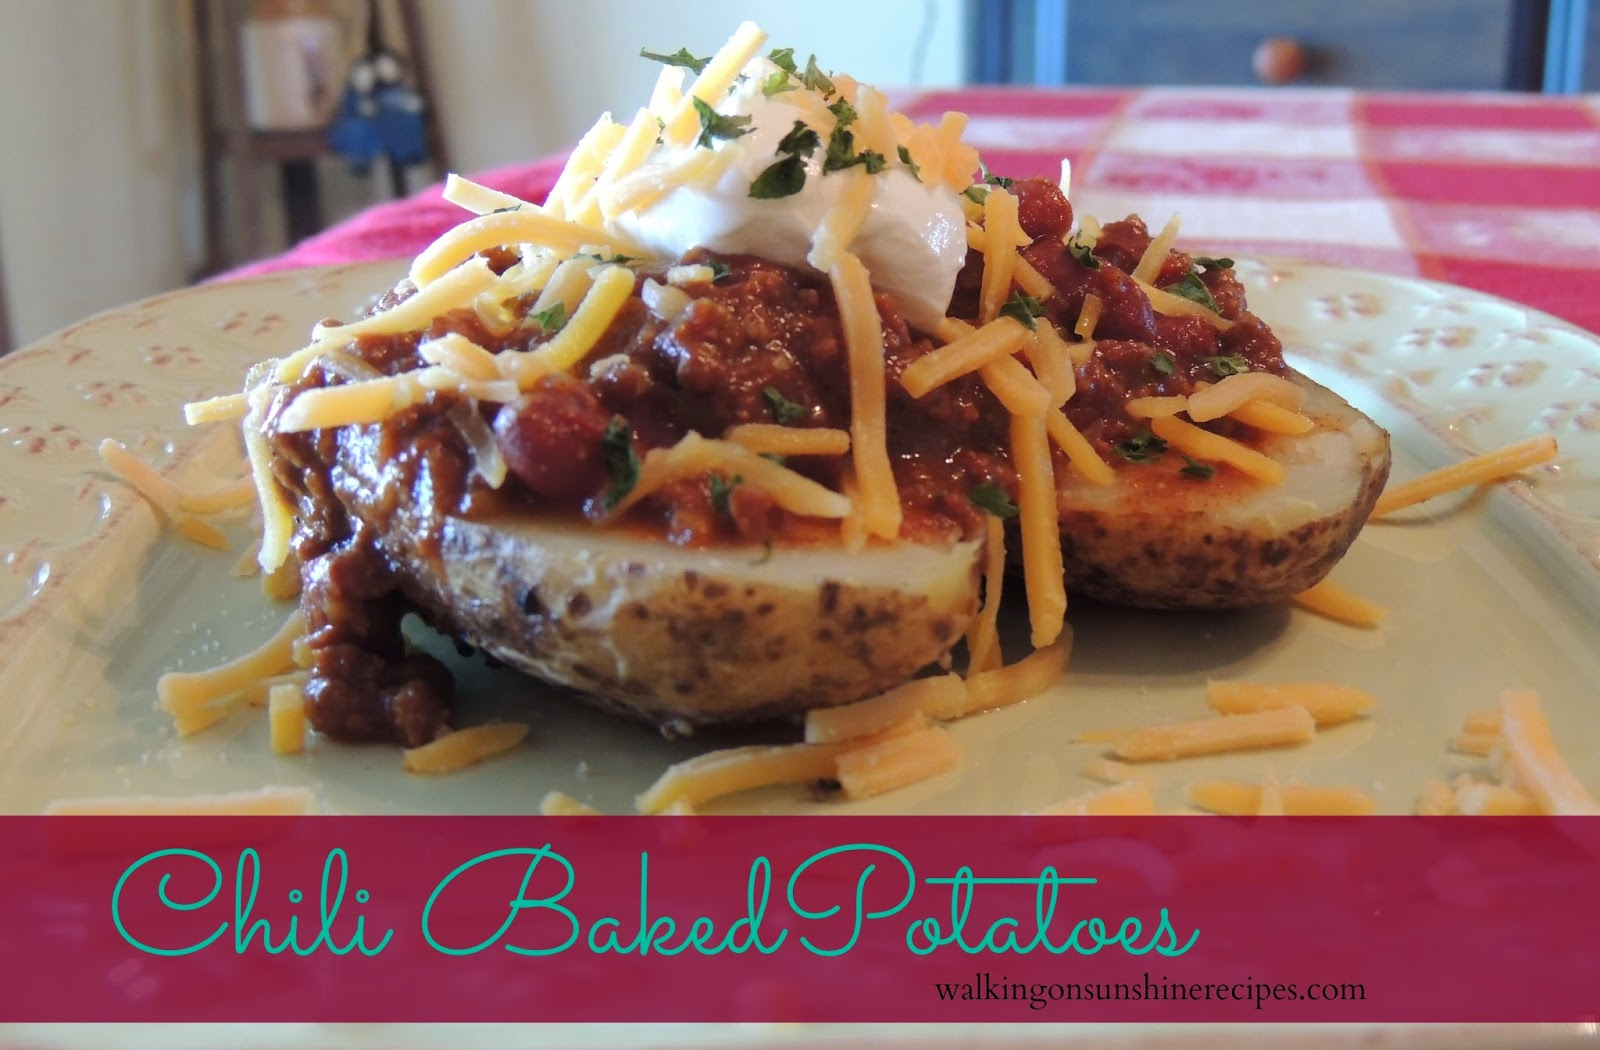 A delicious way to use leftover chili is with these chili baked potatoes from Walking on Sunshine Recipes.